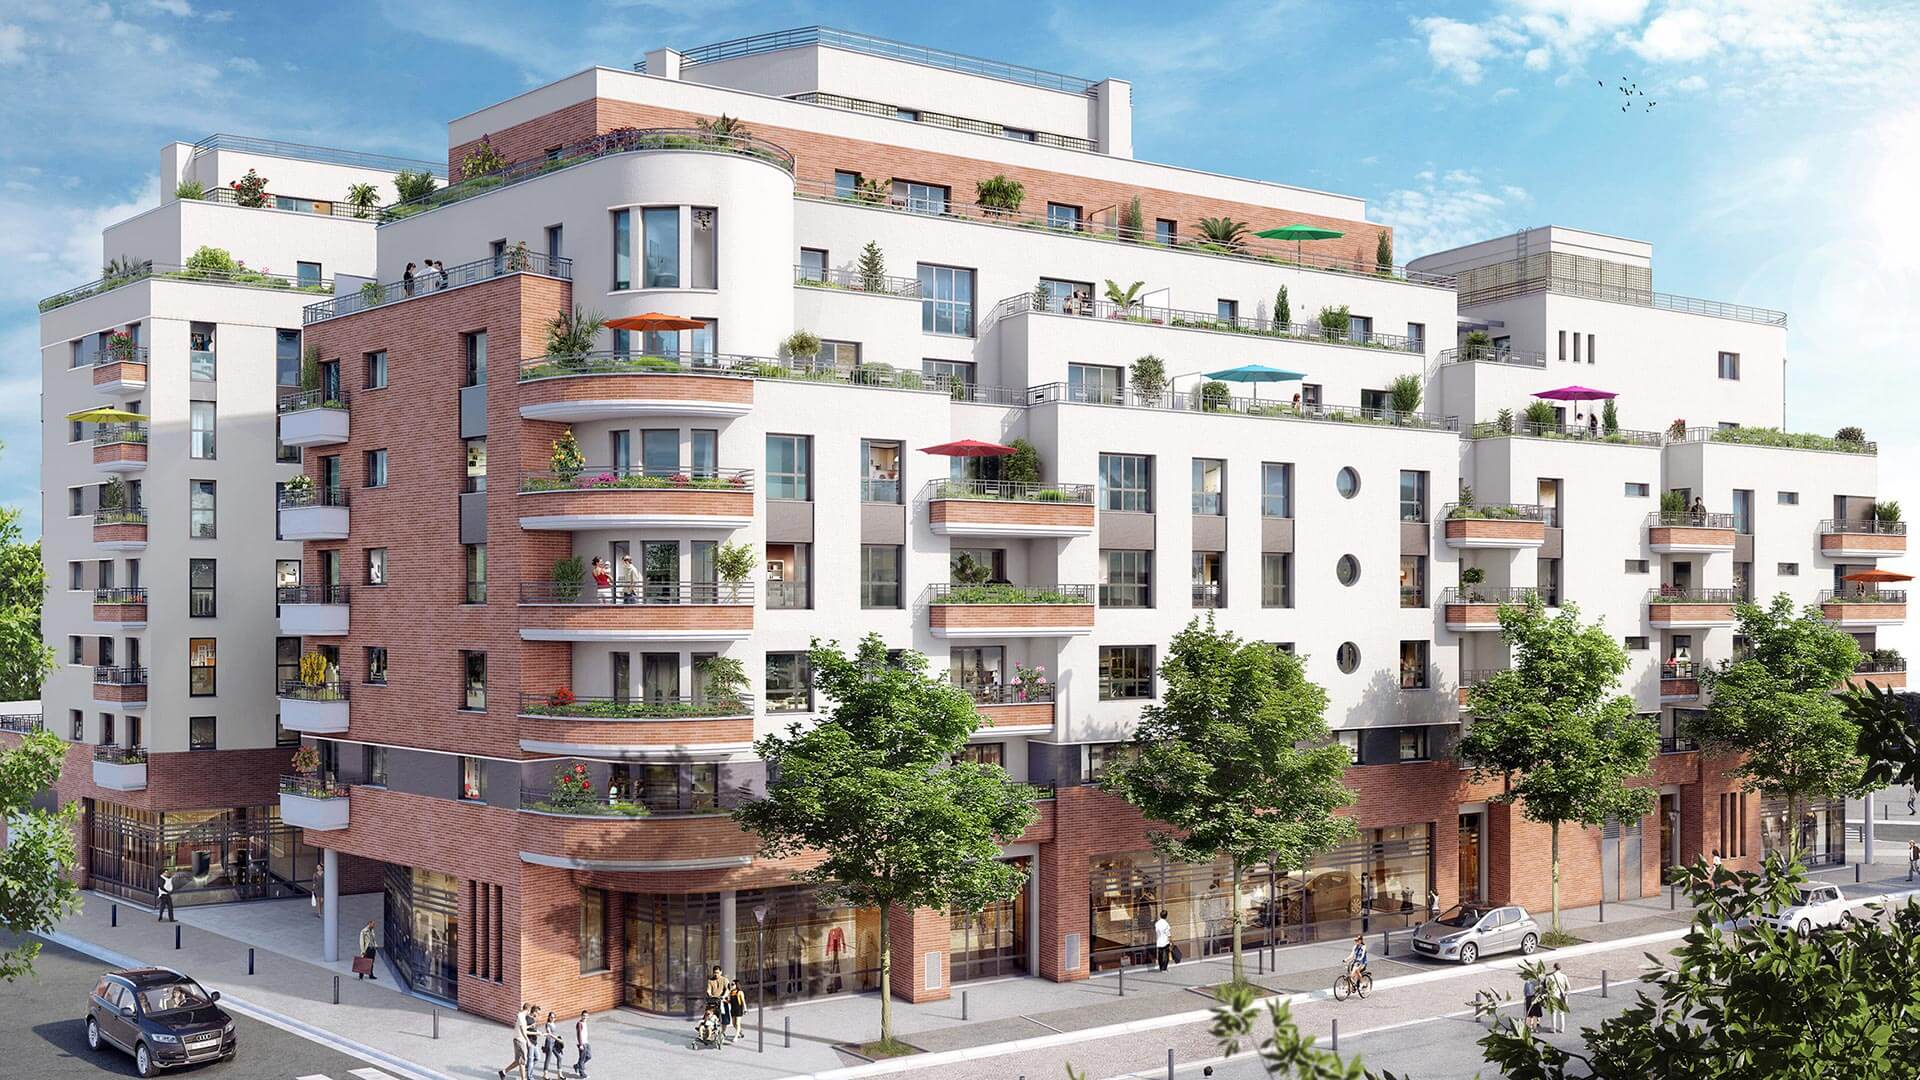 Grand arc programme immobilier neuf romainville for Aide achat immobilier neuf